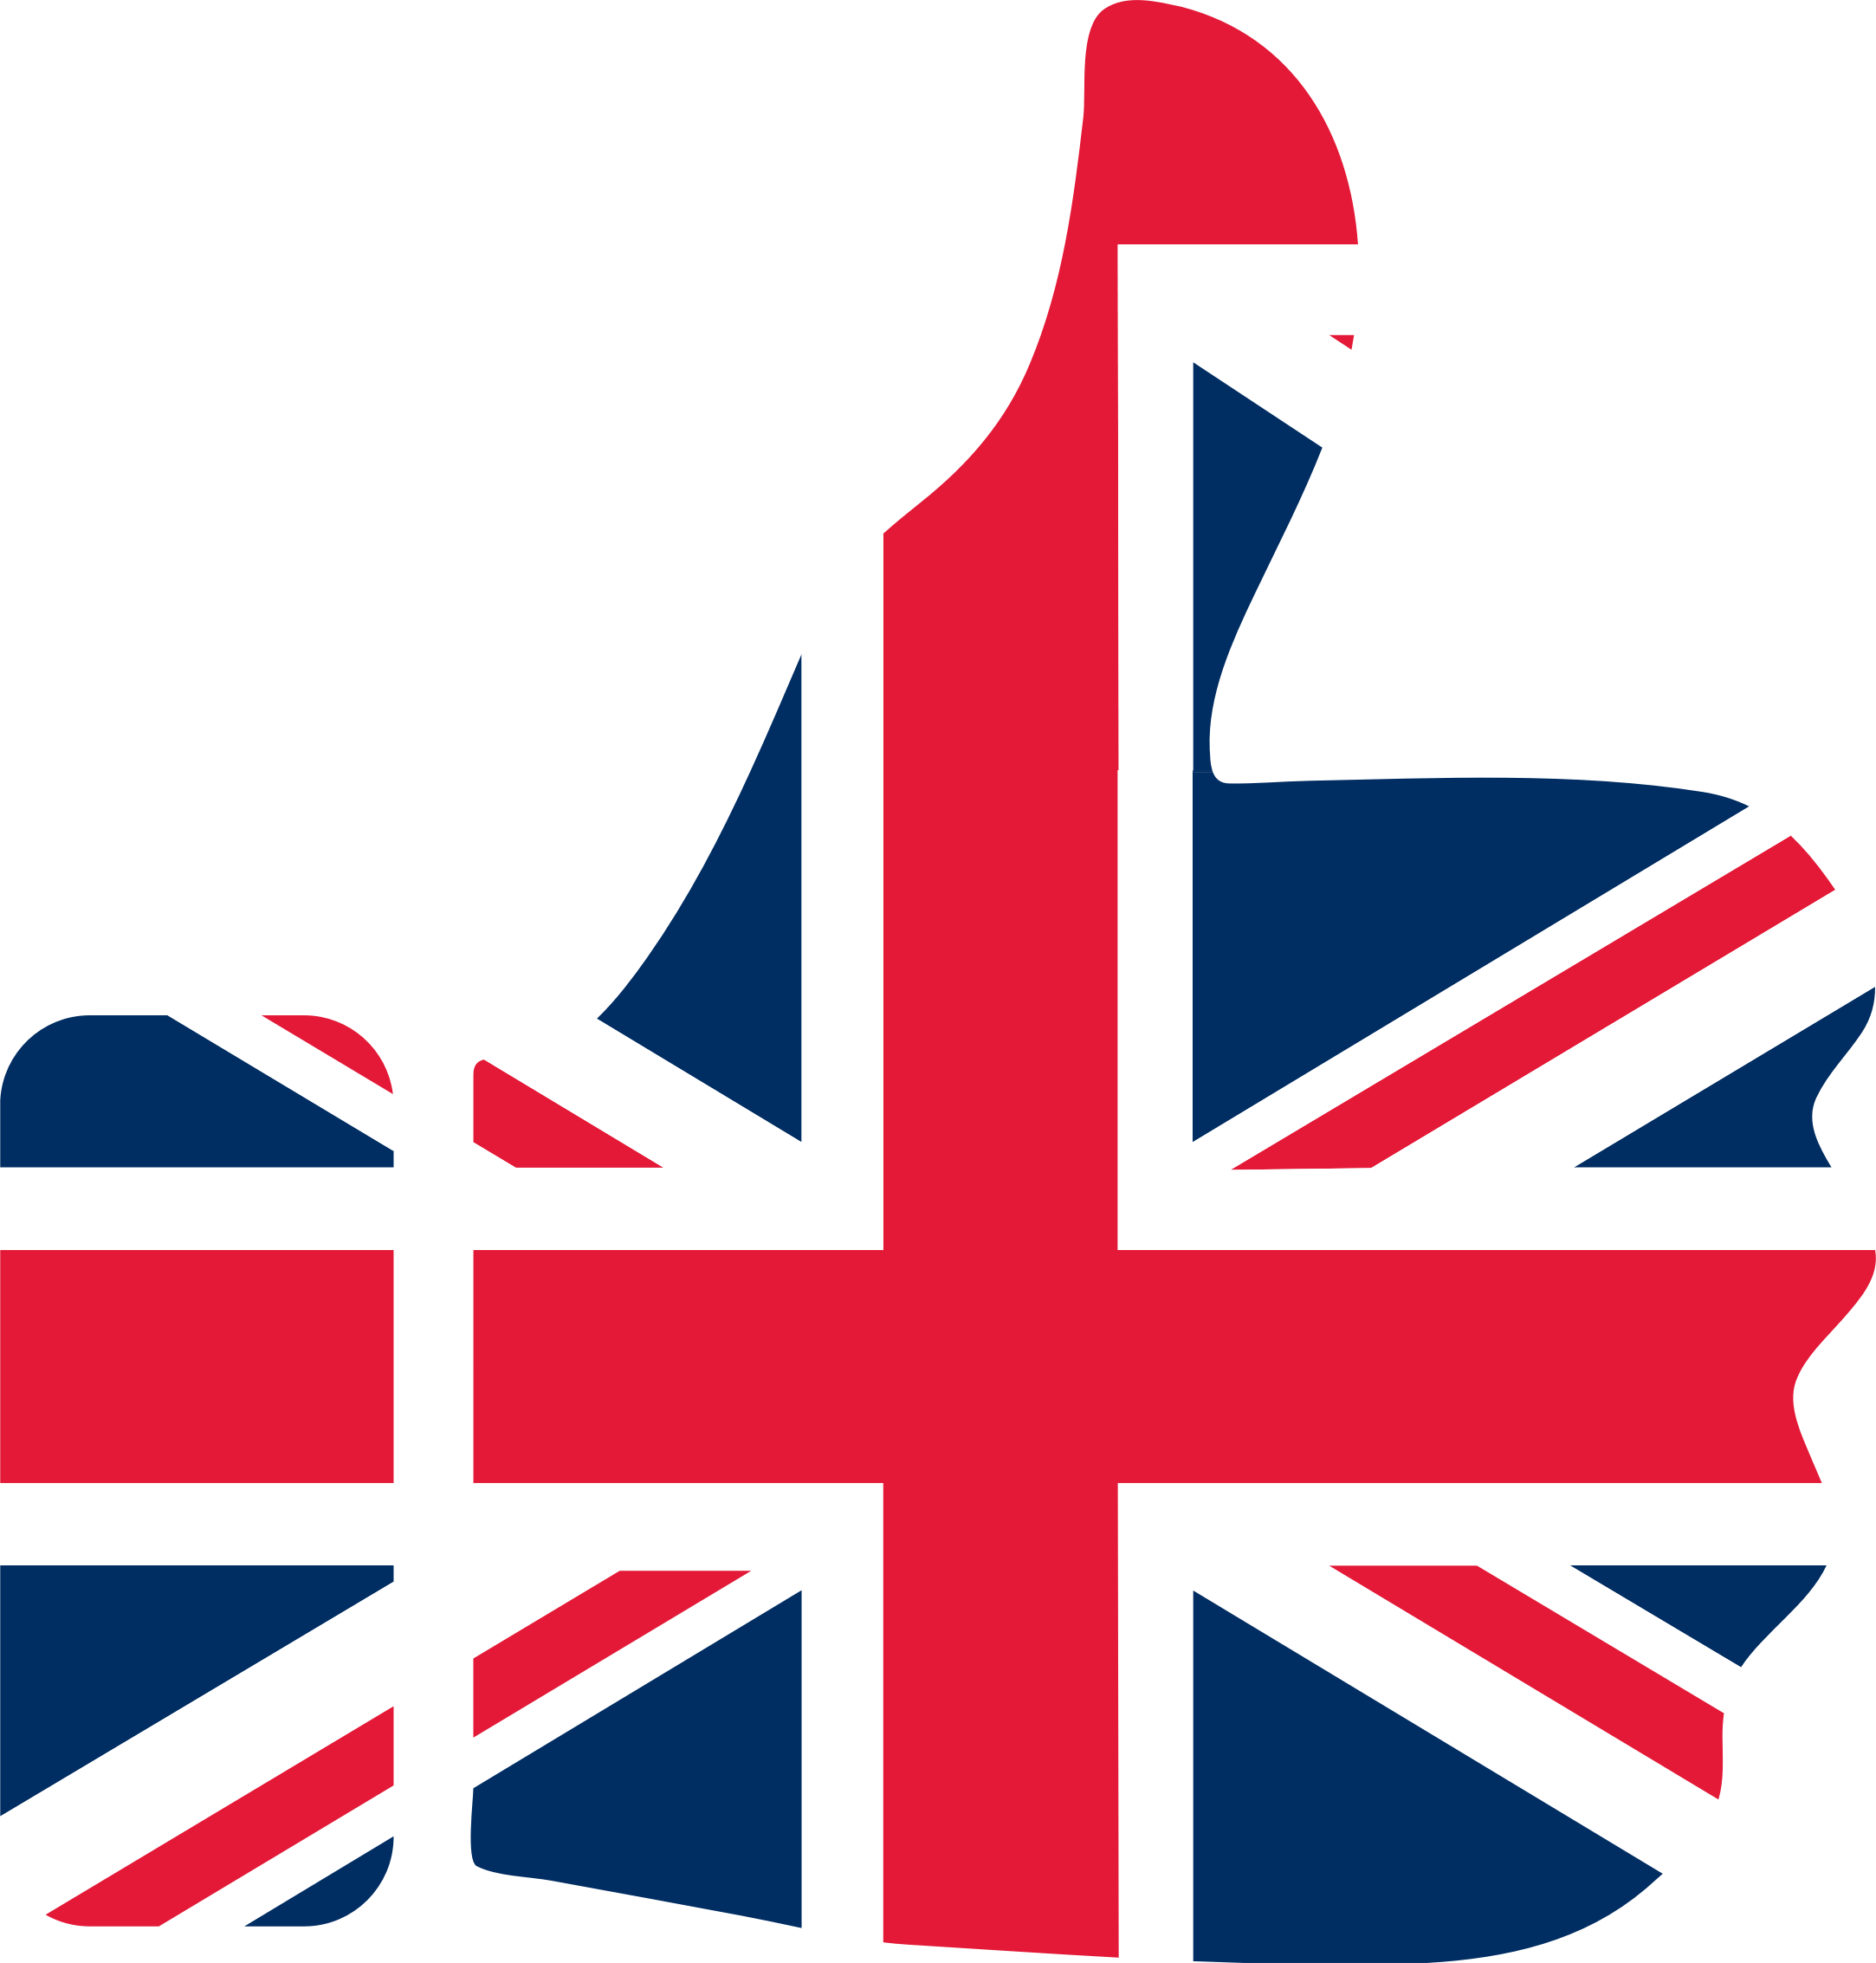 Uk flag png. Thumb up transparent stickpng